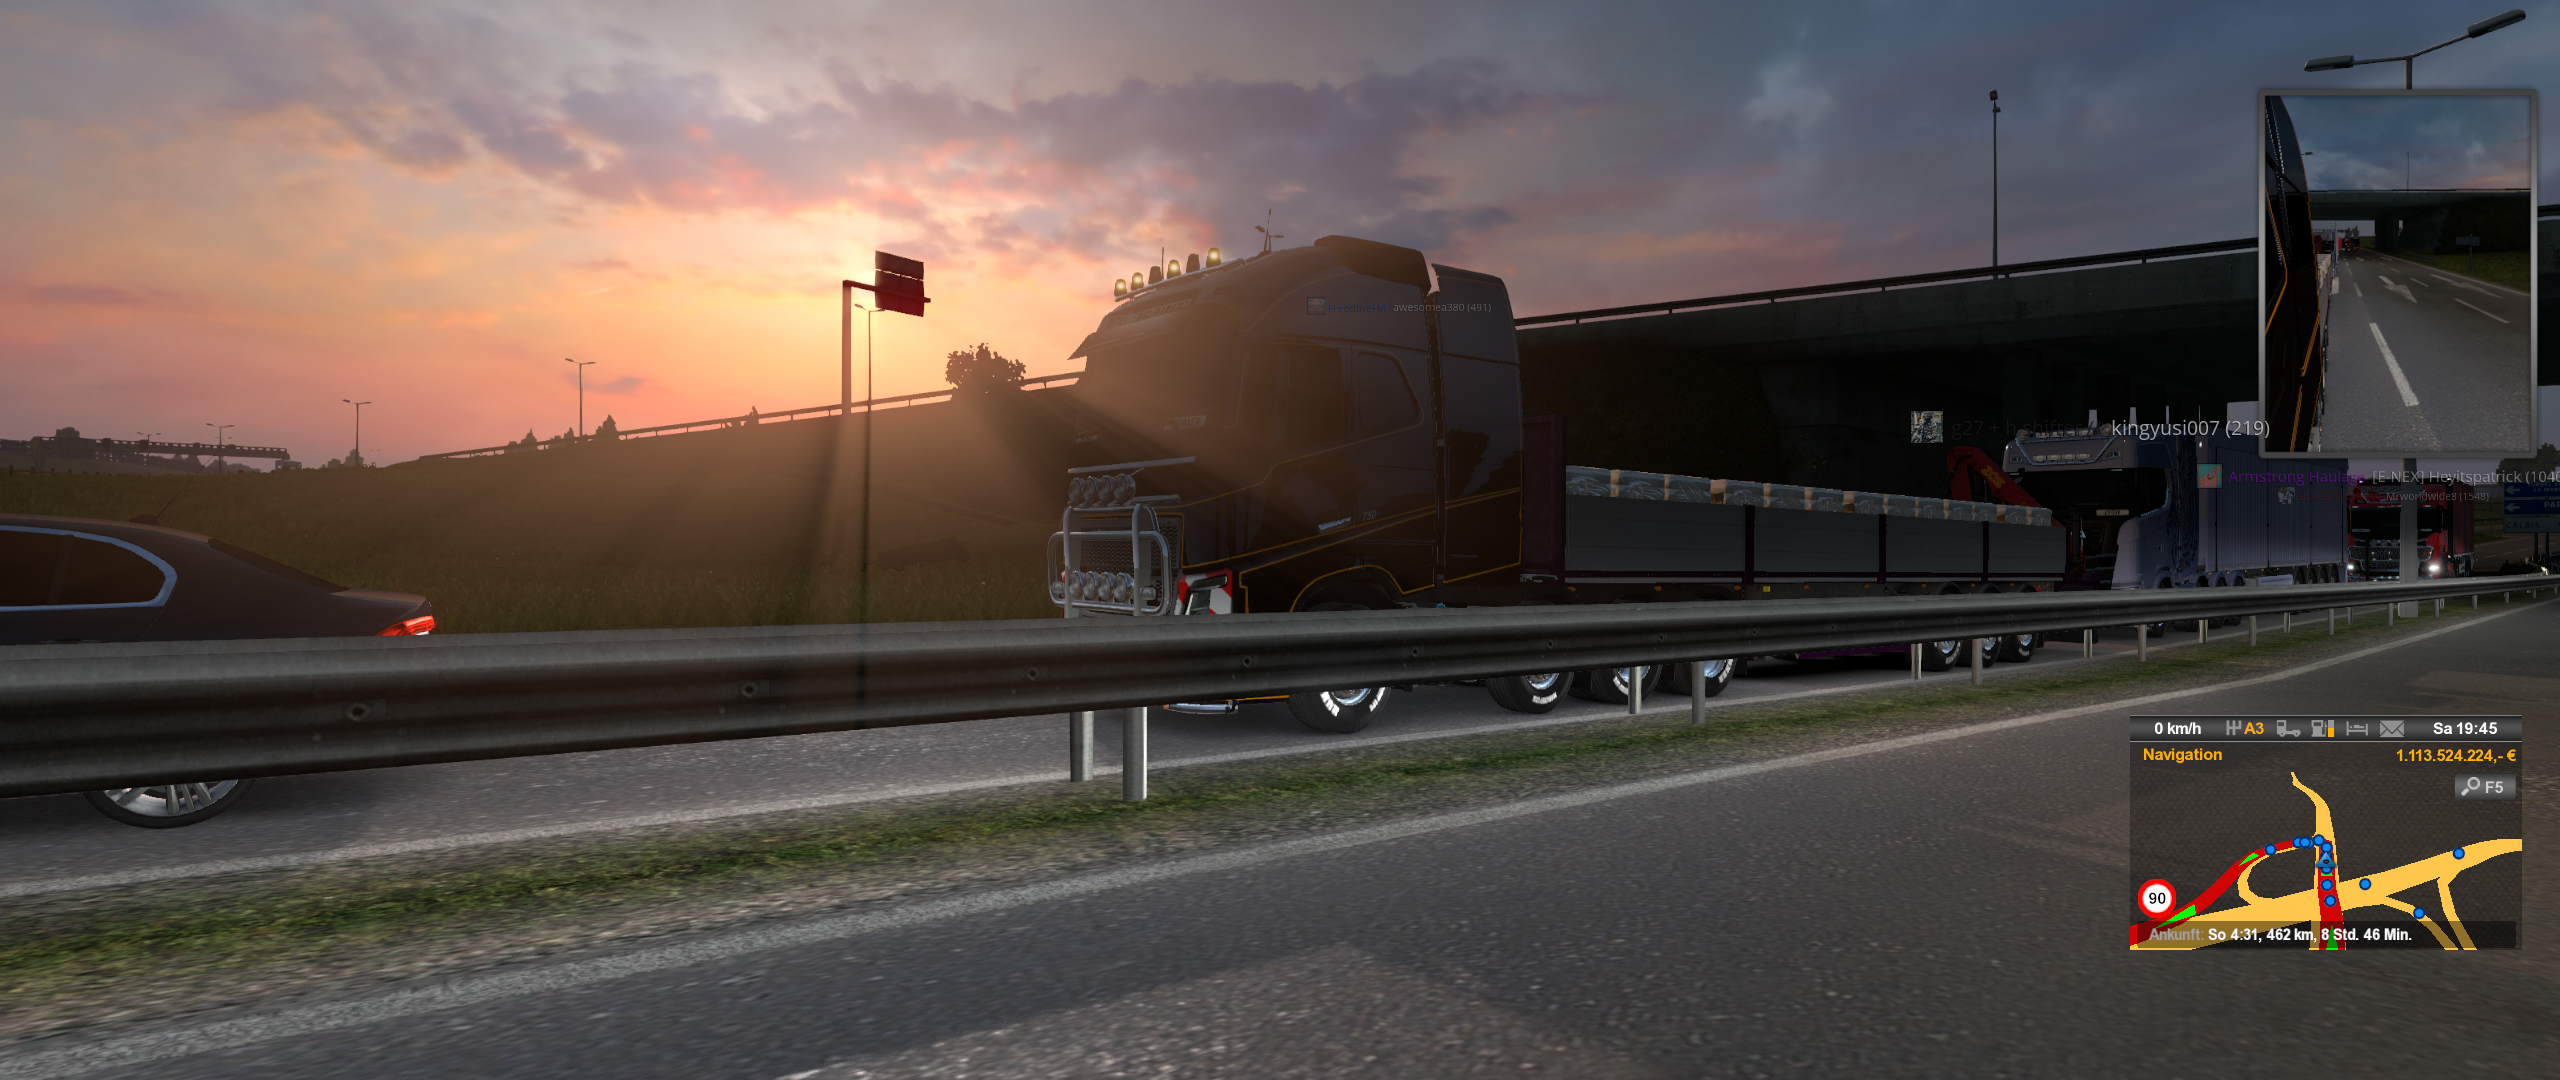 ets2_20181226_234719_00.png